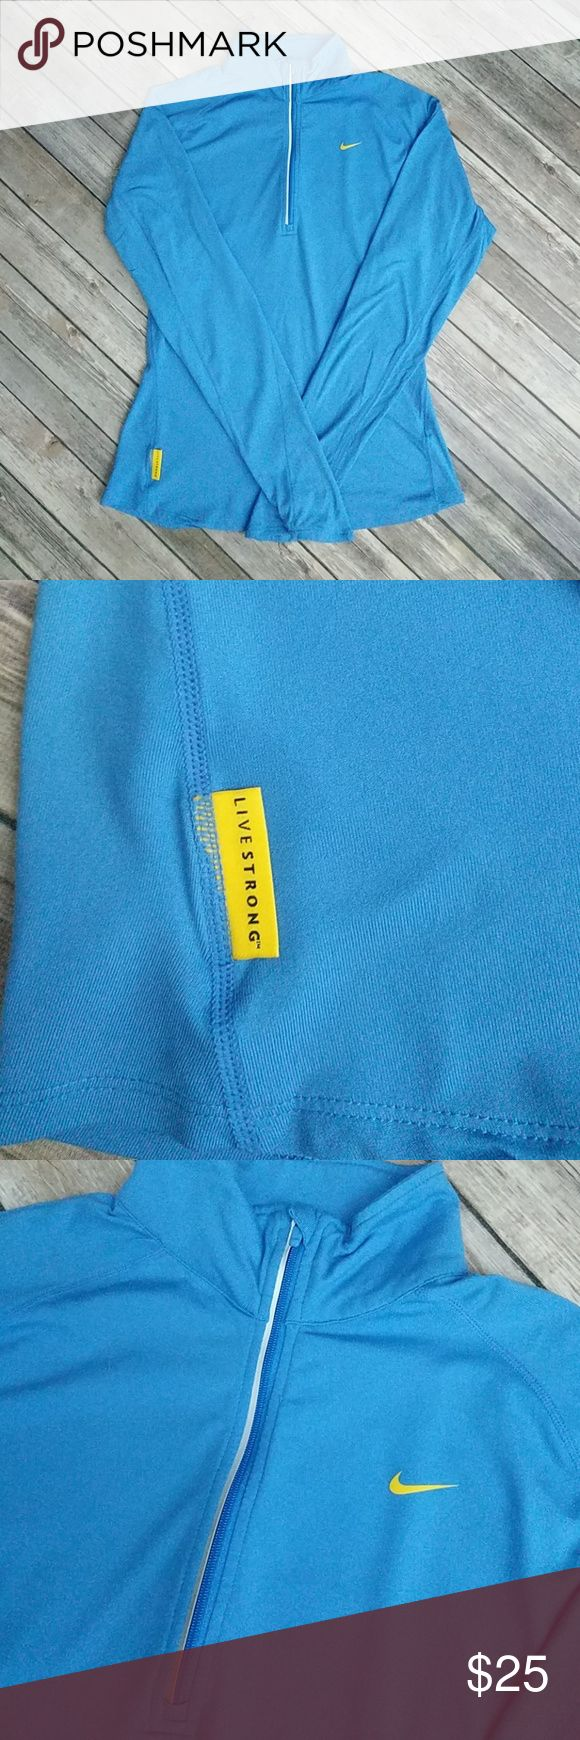 """Nike Livestrong Dri-Fit Half Zip Top Long sleeve top in excellent used condition. Blue with yellow details. Bust 19"""" laying flat. Overall length 26 1/2"""". Nike Tops Tees - Long Sleeve"""